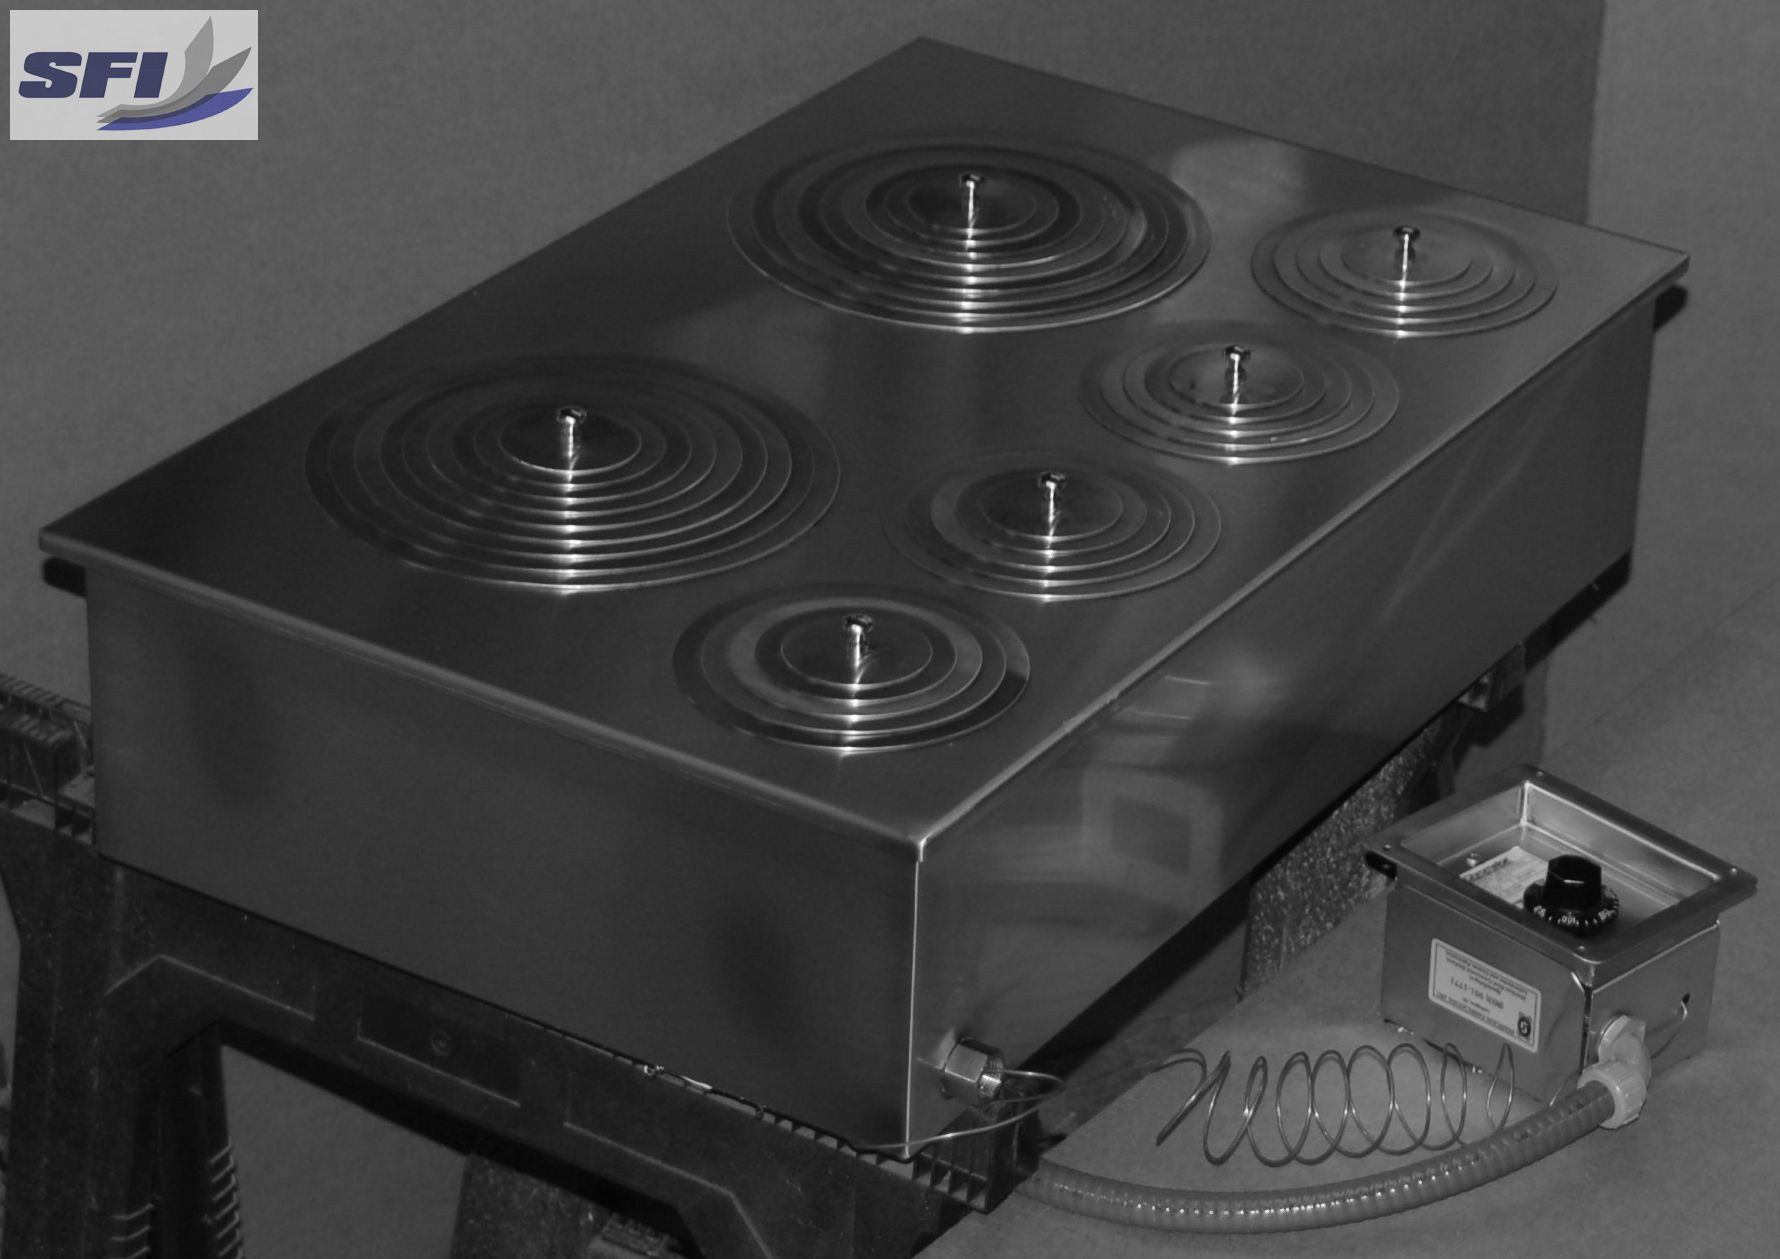 Electric-steam-baths electric stainless steel steam bath with control